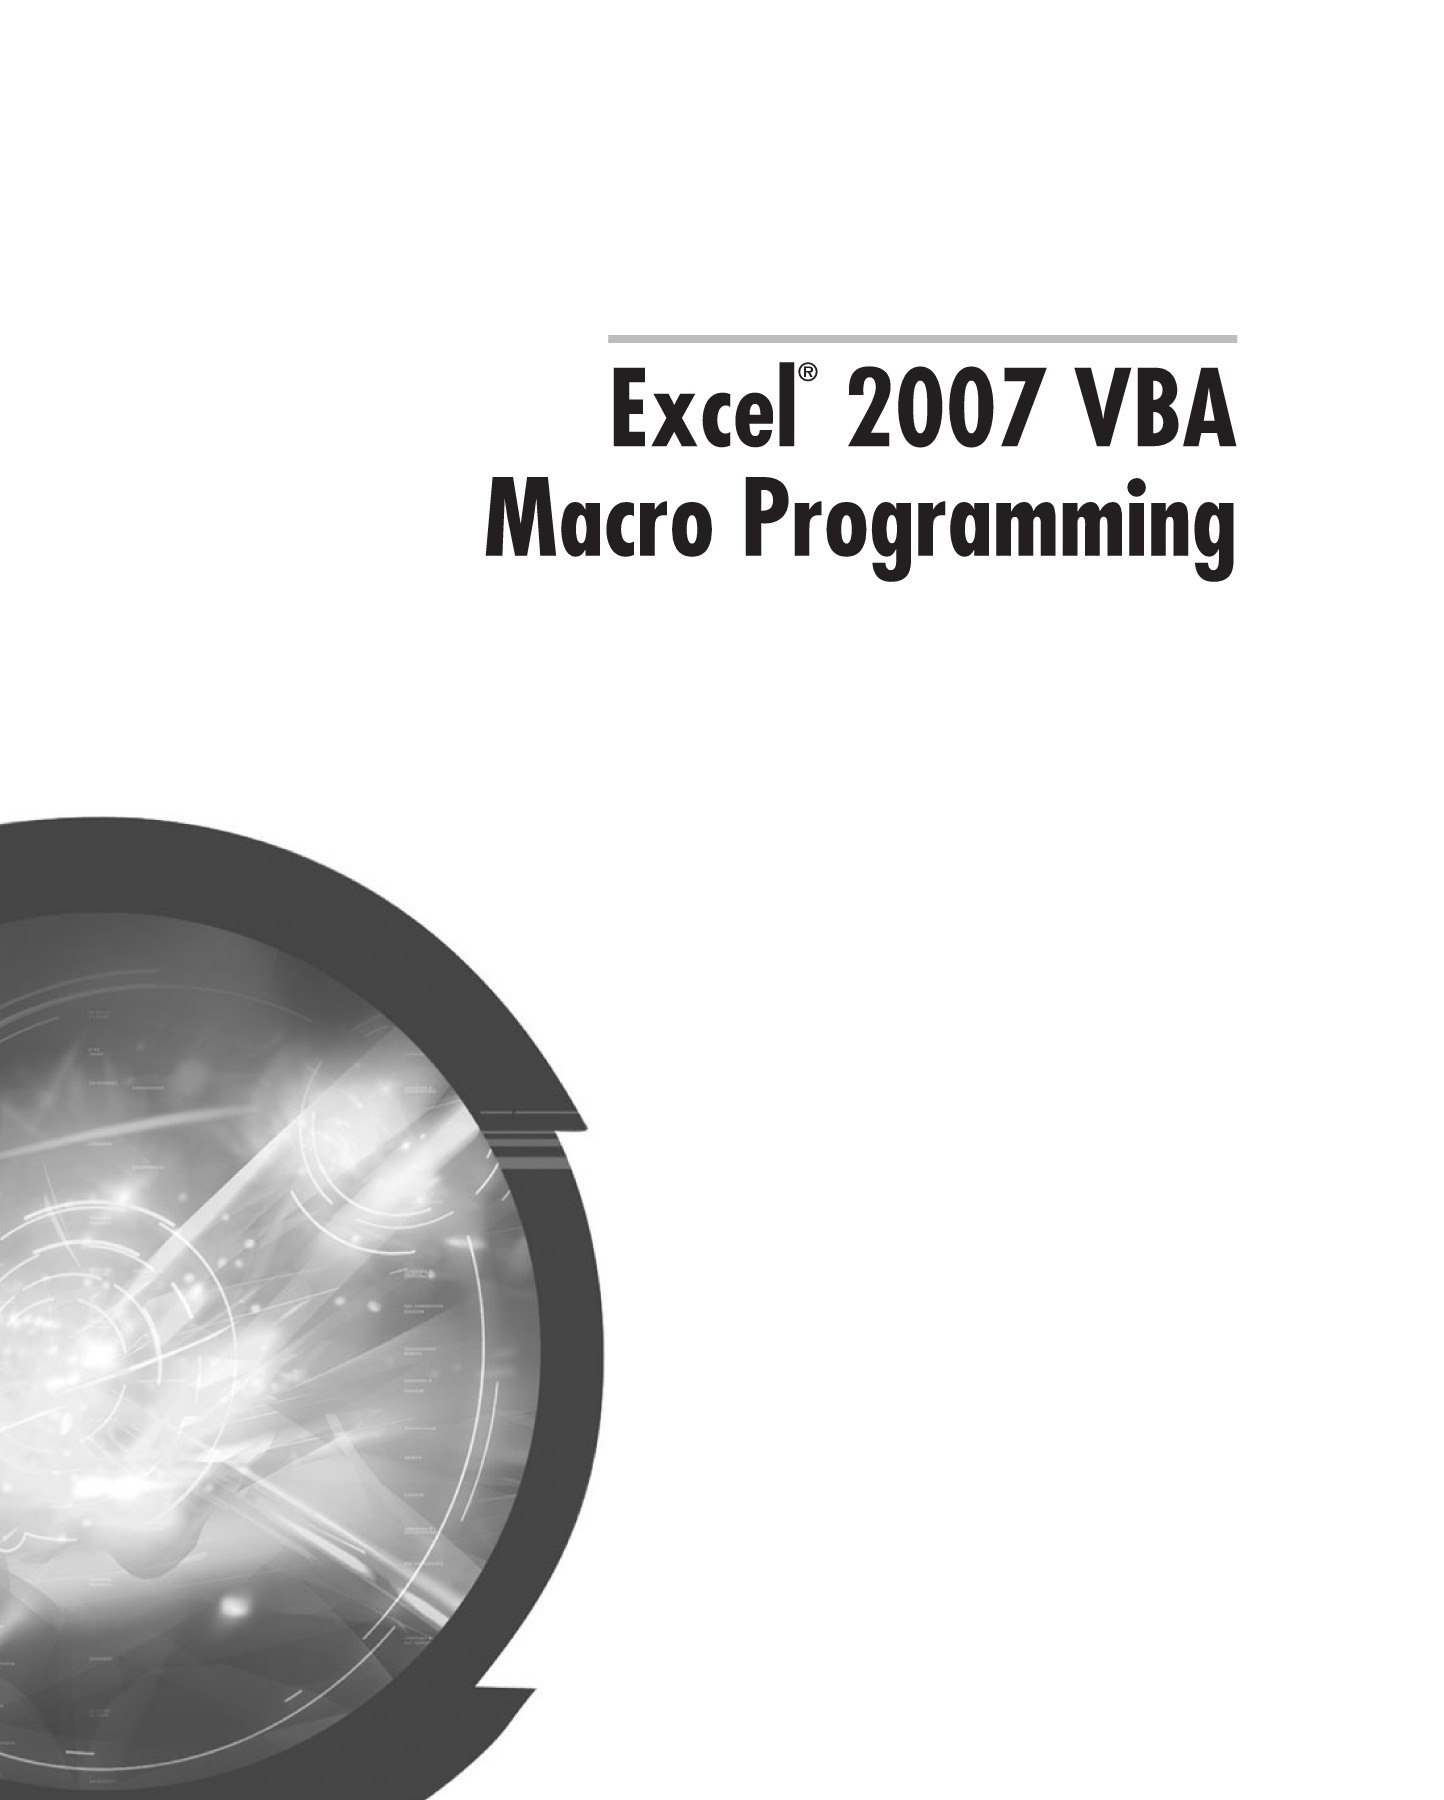 McGraw Hill - Excel 2007 VBA Macro Programming (11-2009)